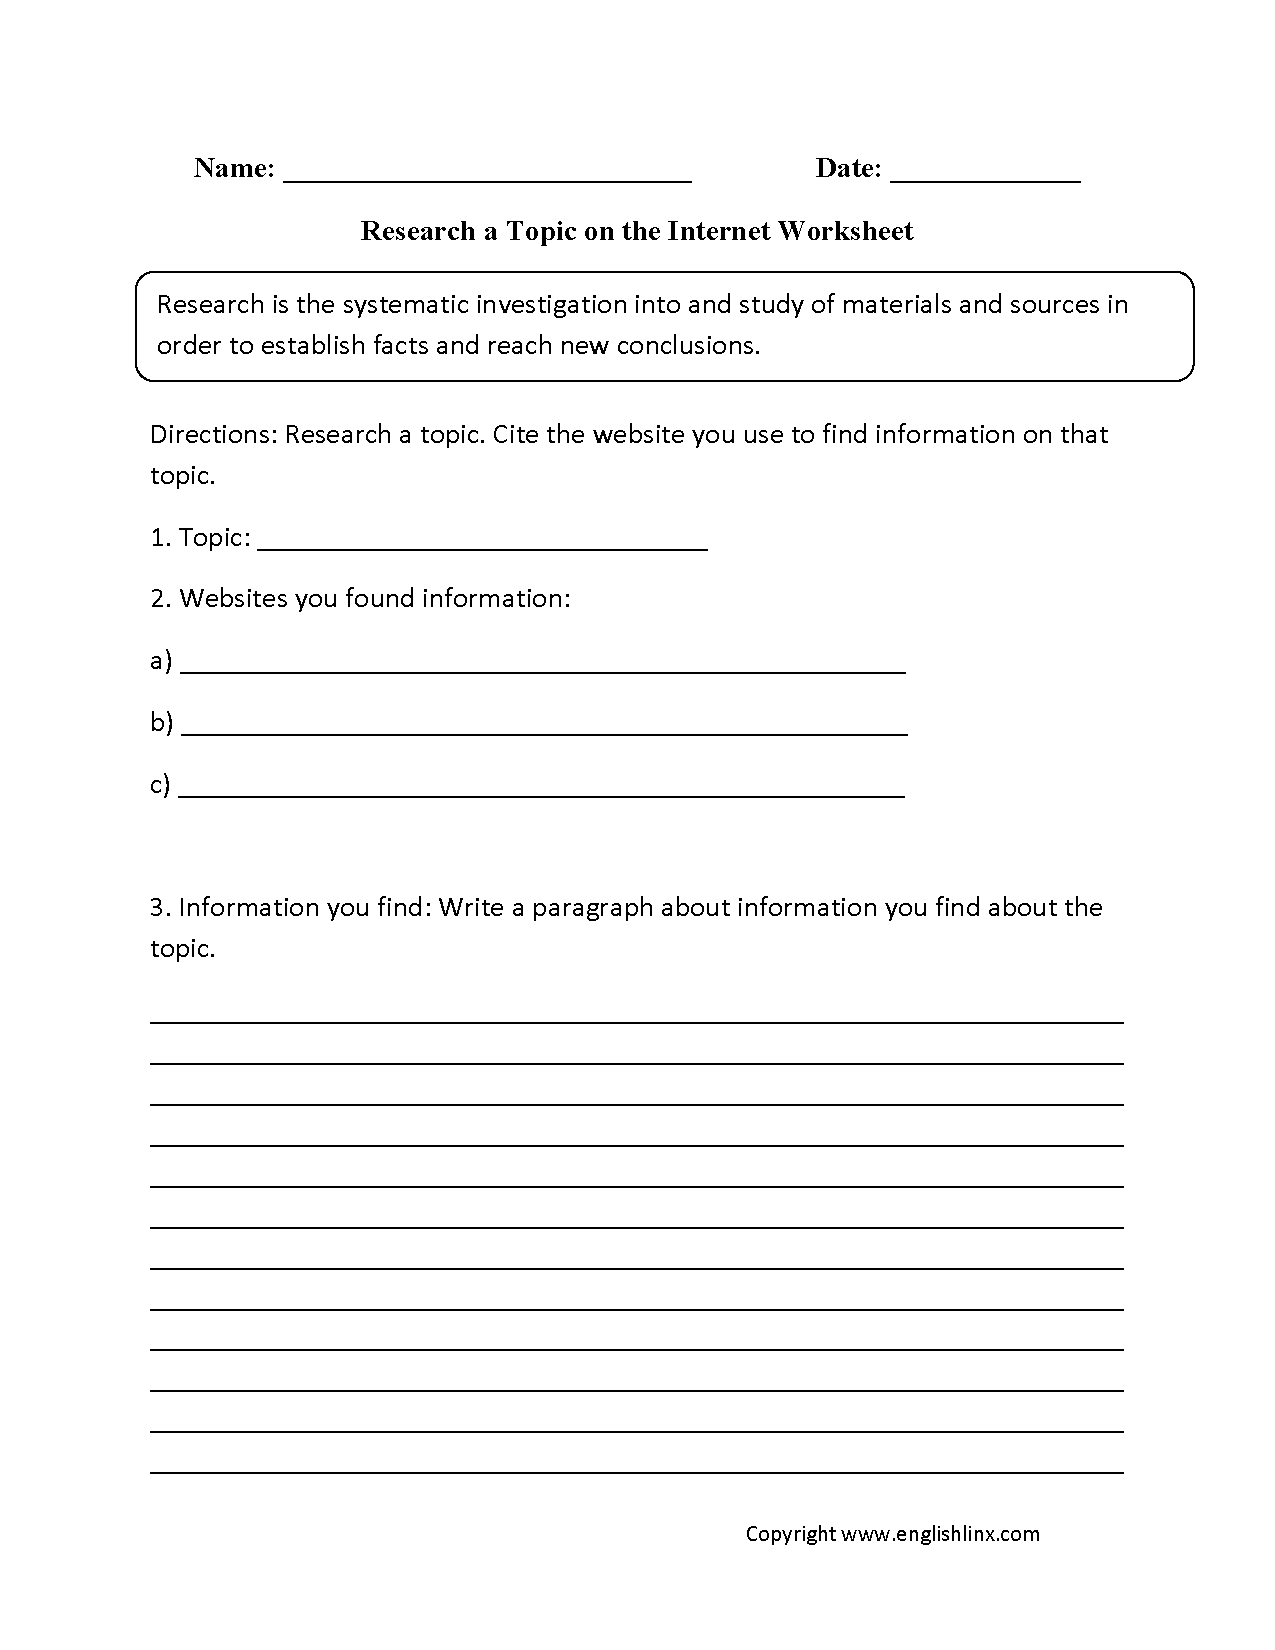 Aldiablosus  Unique Englishlinxcom  Research Worksheets With Engaging On The Internet Worksheet With Cute Marzano Vocabulary Worksheet Also English Printable Worksheets In Addition School Worksheets For Nd Graders And Arrays Multiplication Worksheet As Well As Crossword Puzzle Worksheet Additionally Associative And Commutative Property Worksheets From Englishlinxcom With Aldiablosus  Engaging Englishlinxcom  Research Worksheets With Cute On The Internet Worksheet And Unique Marzano Vocabulary Worksheet Also English Printable Worksheets In Addition School Worksheets For Nd Graders From Englishlinxcom